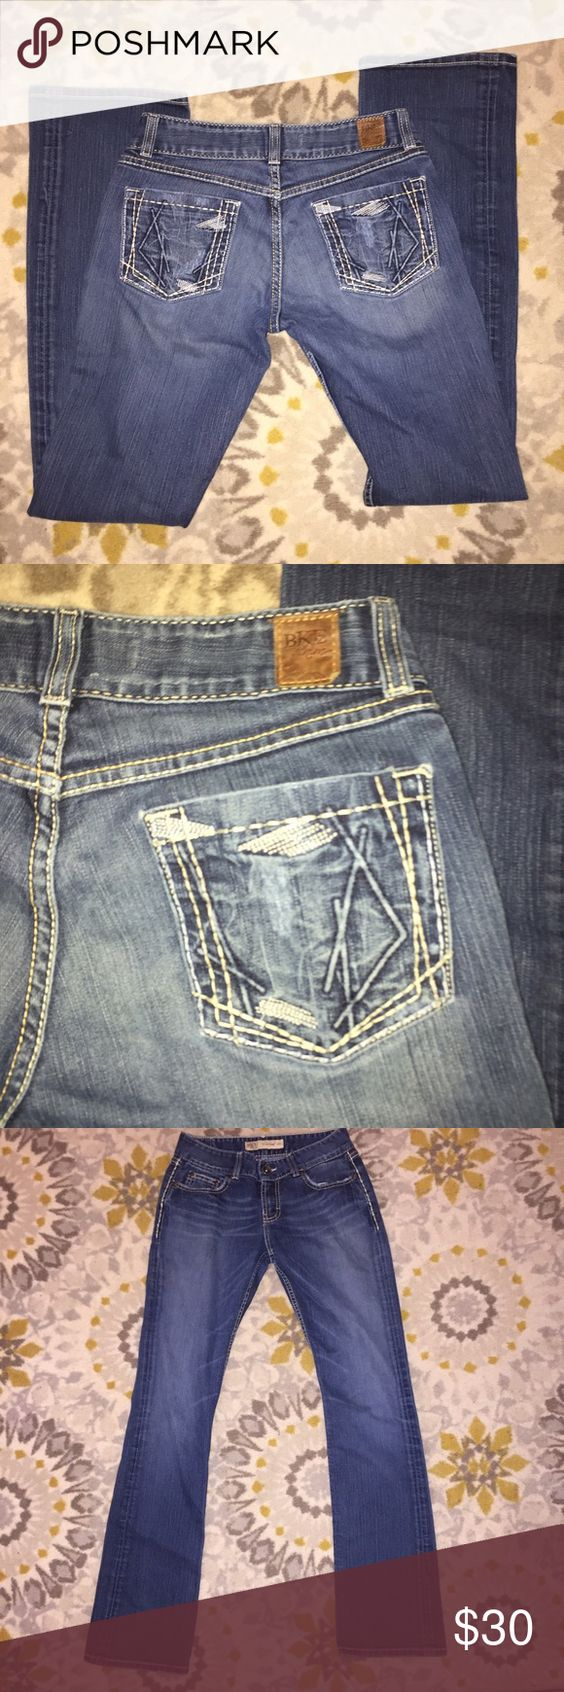 """BKE The Buckle Culture Stretch Jeans Sz 29 x 35 Amazing condition! No rips or stains. Distressed. Very little wear on hem. Stitched access pockets. Can be hemmed to the perfect inseam for you!  Features: 5 pockets, zip fly distressed designing From a nonsmoking home.  Measurements: Waist: 14.5"""" Hips: 16.5"""" Front rise: 8"""" Inseam: 35"""" BKE Jeans Boot Cut"""